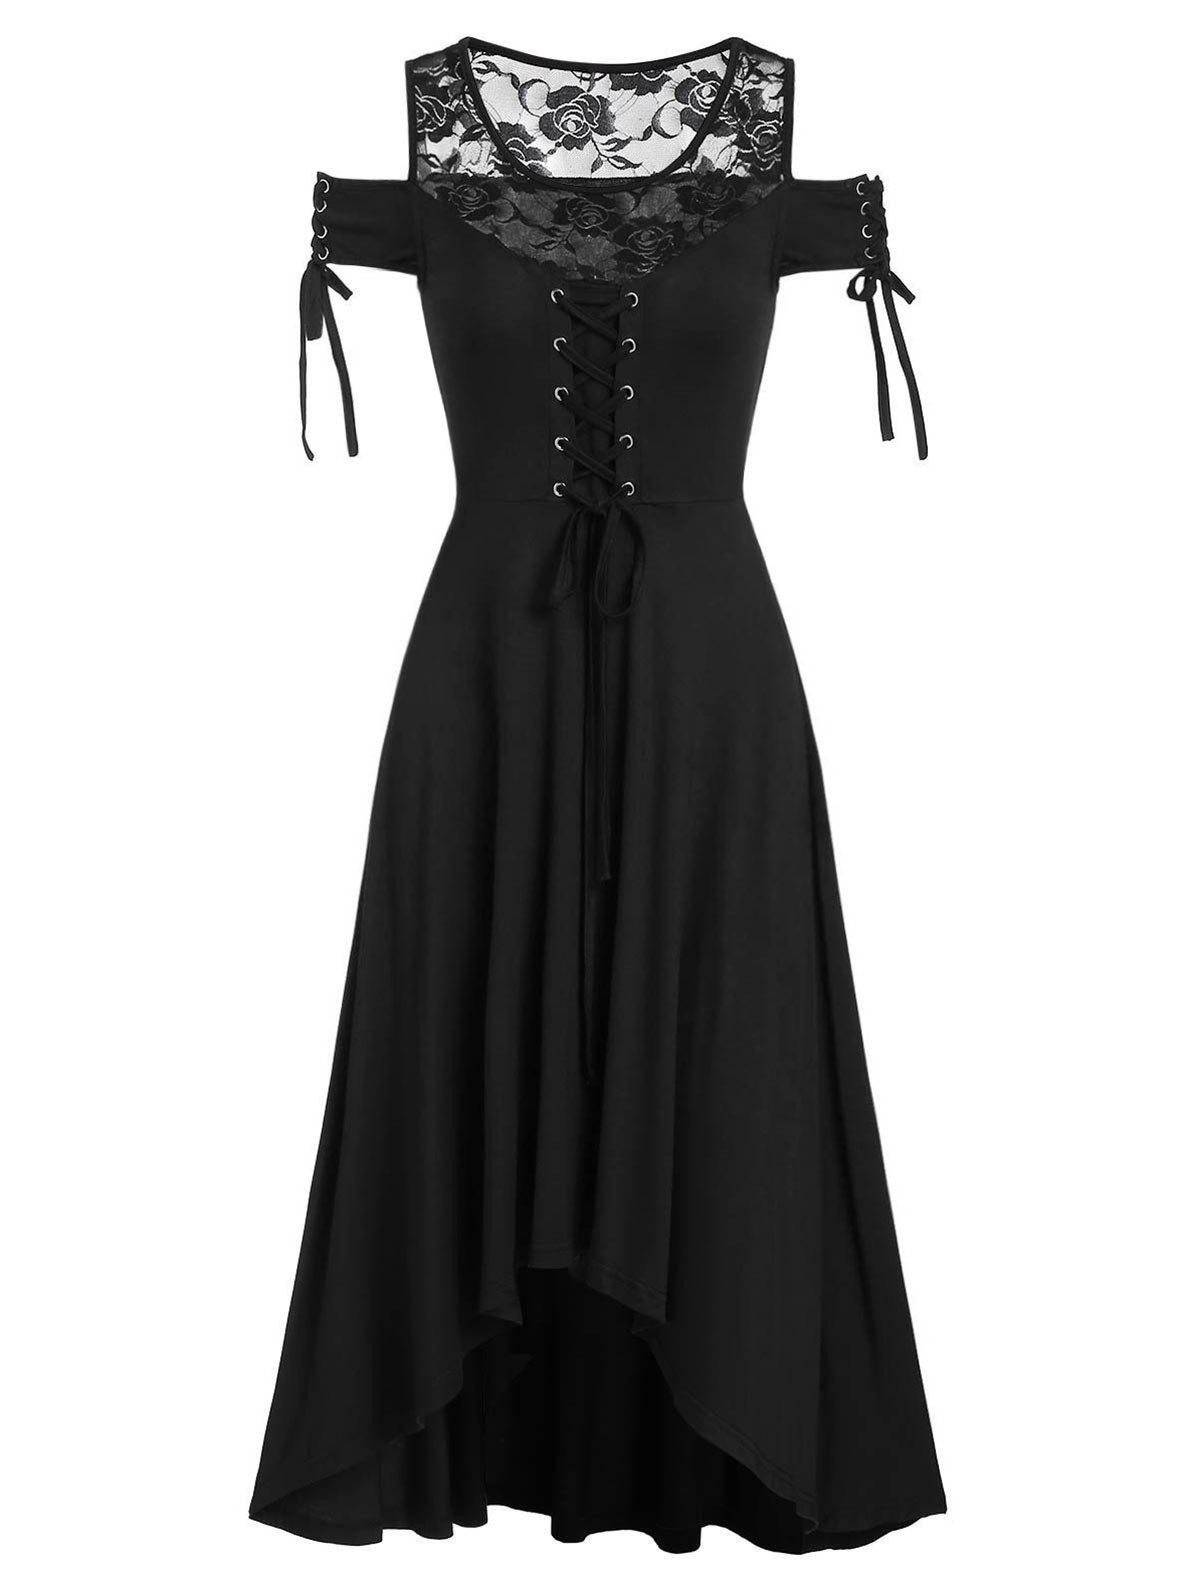 Chic Lace Insert Cold Shoulder Lace-up Gothic High Low Dress